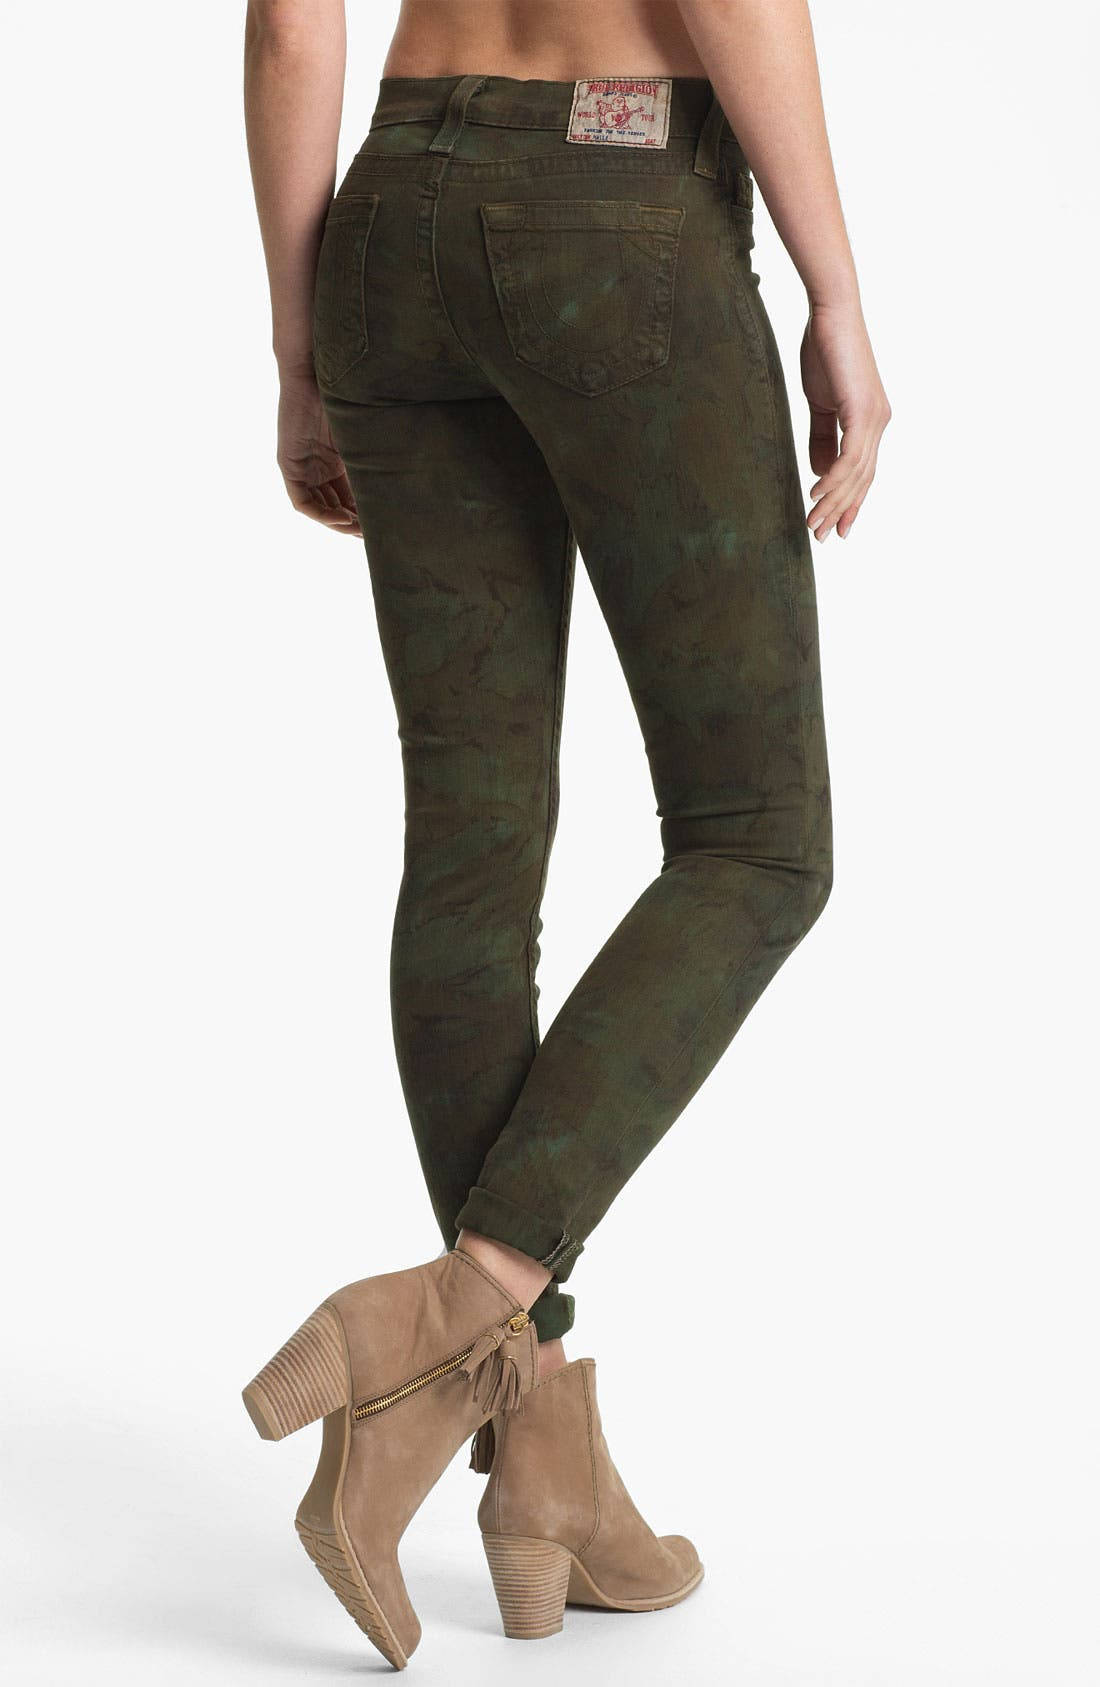 Alternate Image 2  - True Religion Brand Jeans 'Halle' Skinny Stretch Jeans (Military)